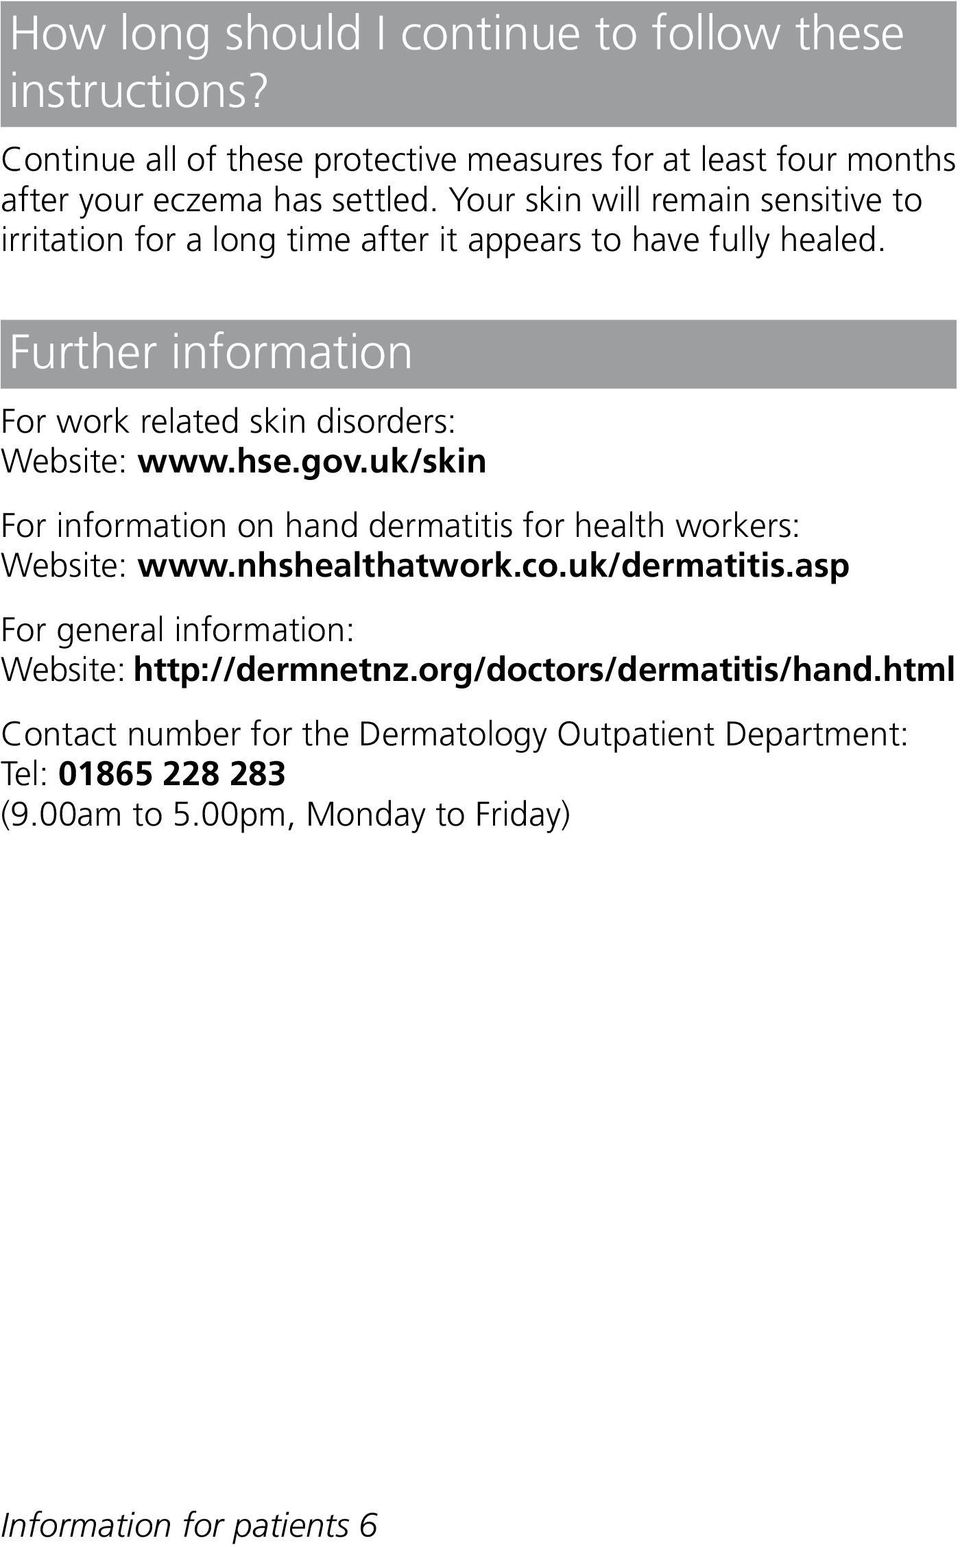 hse.gov.uk/skin For information on hand dermatitis for health workers: Website: www.nhshealthatwork.co.uk/dermatitis.